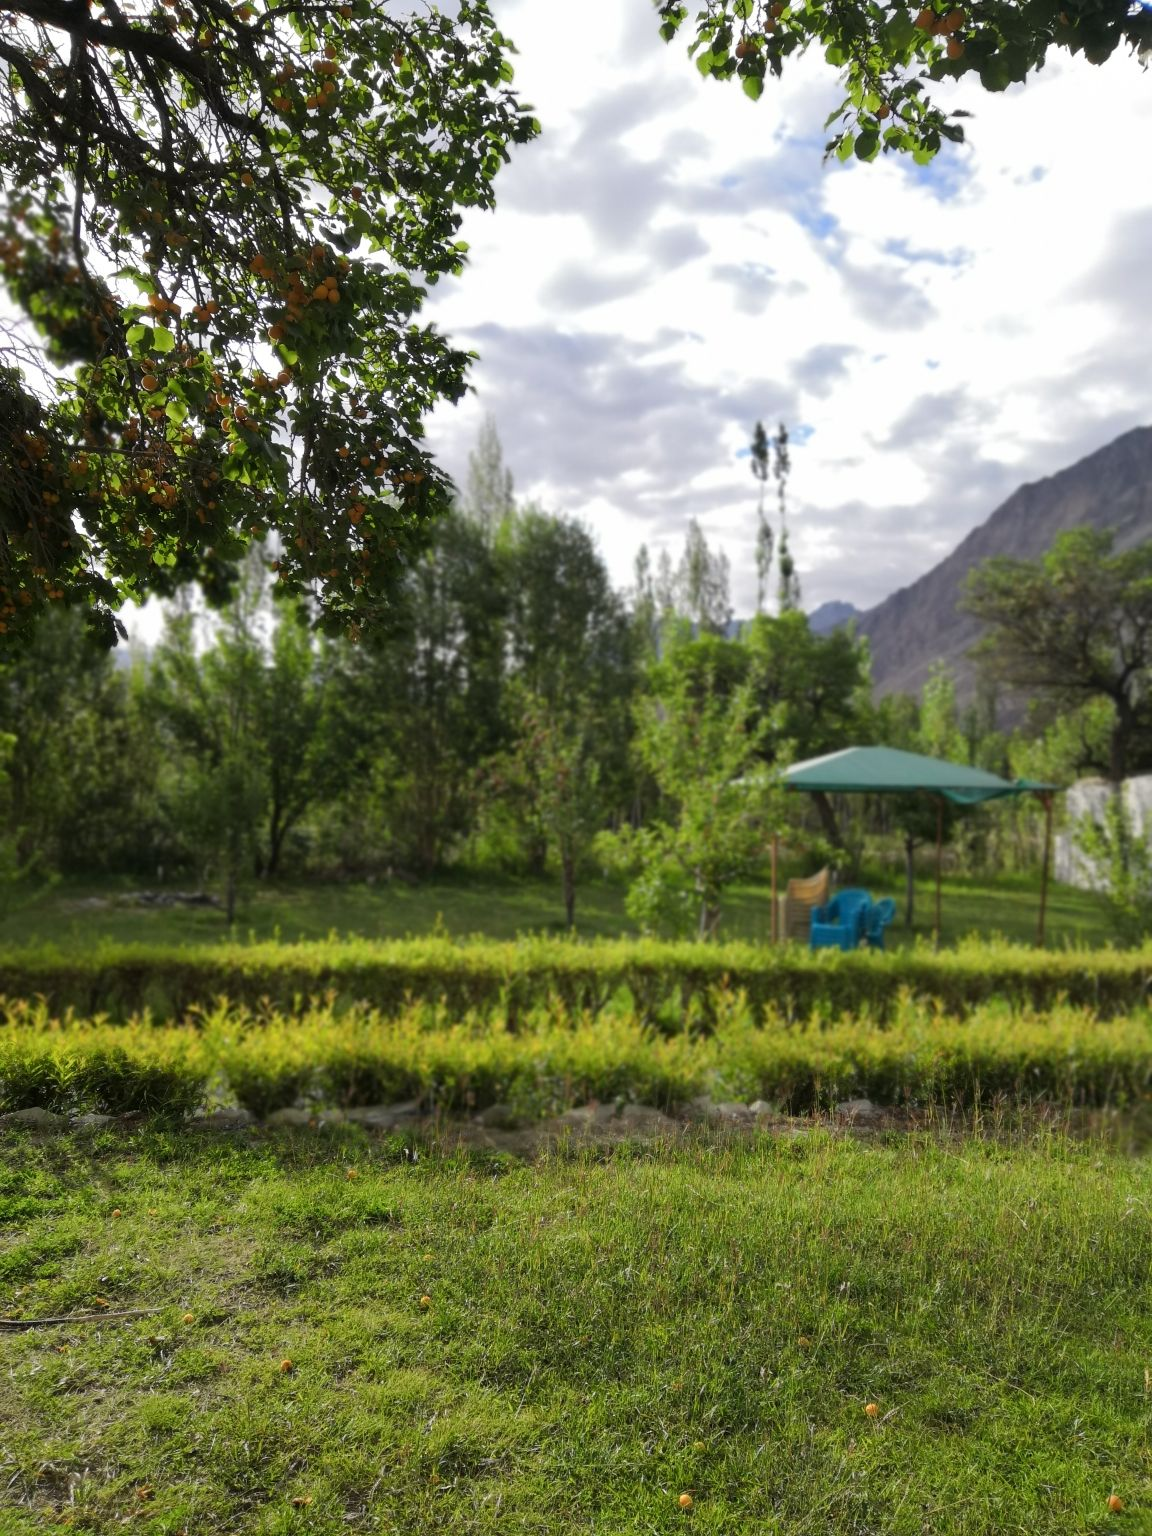 Photo of Nubra Valley By Sonal Shah